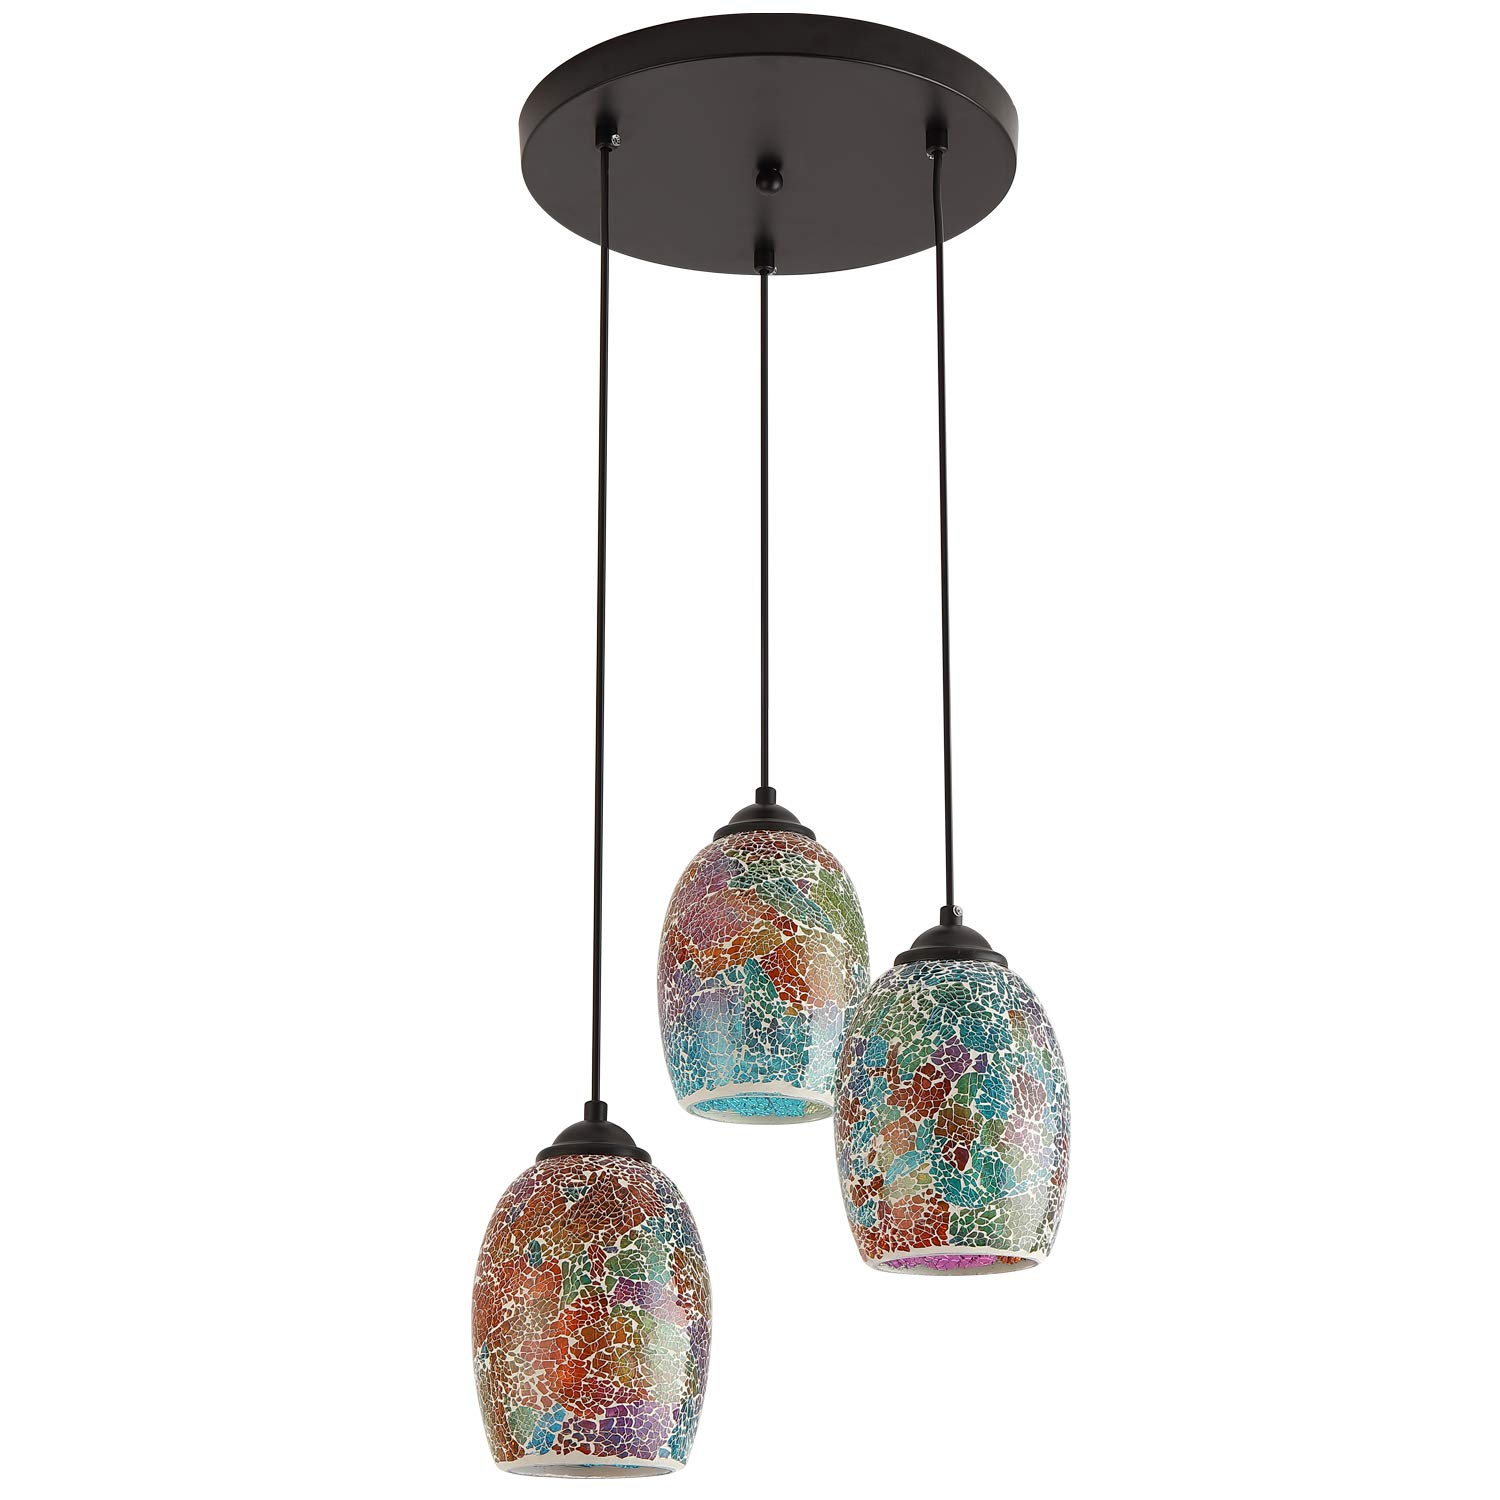 Modern Kitchen Island Lighting, Hand Crafted Mosaic Colored Glass Shade Hanging Ceiling Lights,3 Lights Round Base Multi Pendant Lighting for Kitchen Island Dining Room Living Room Table